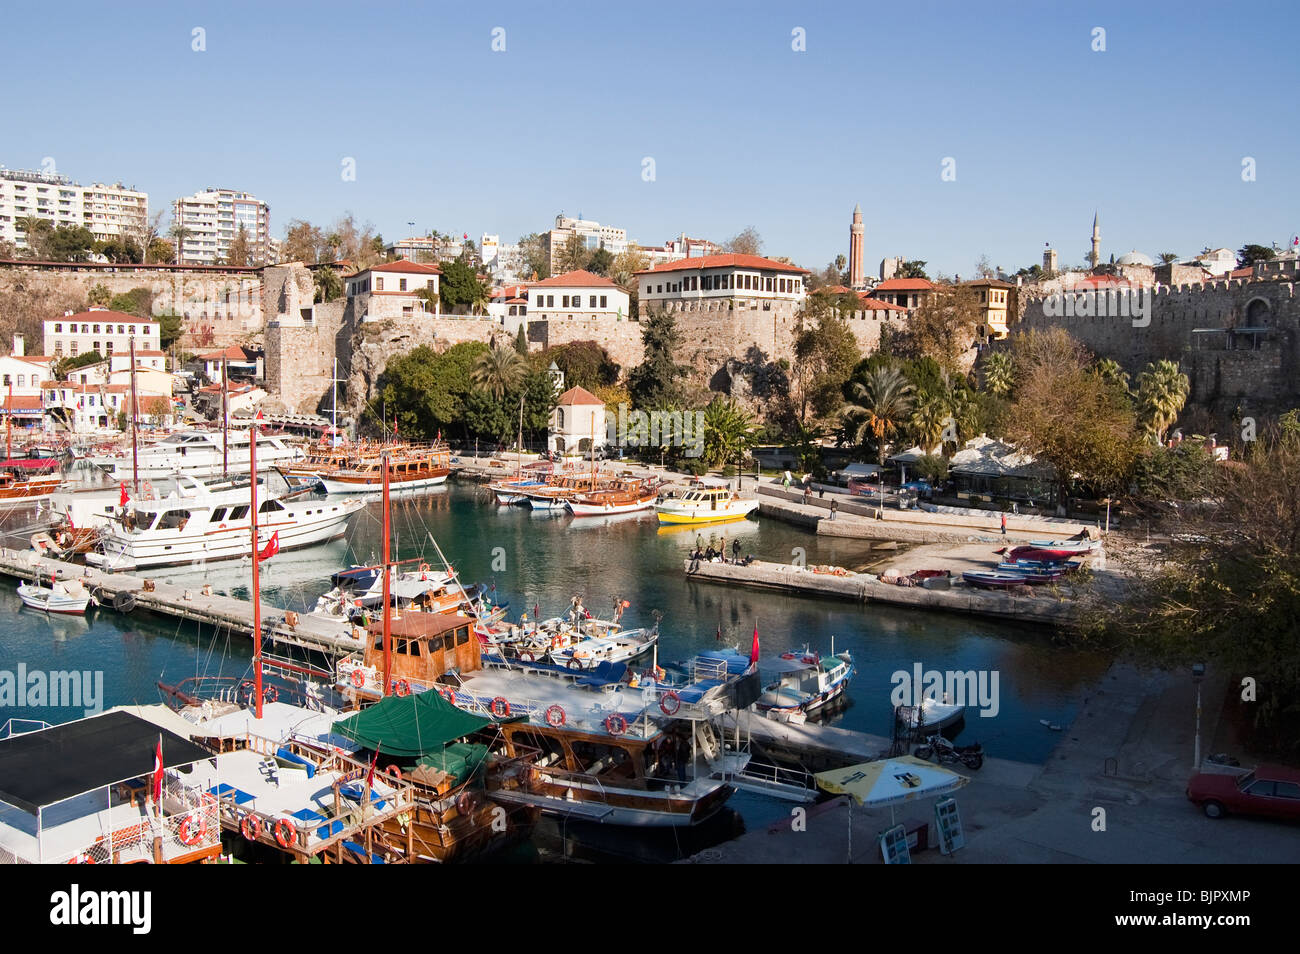 The harbour of Old Antalya, Turkey - Stock Image